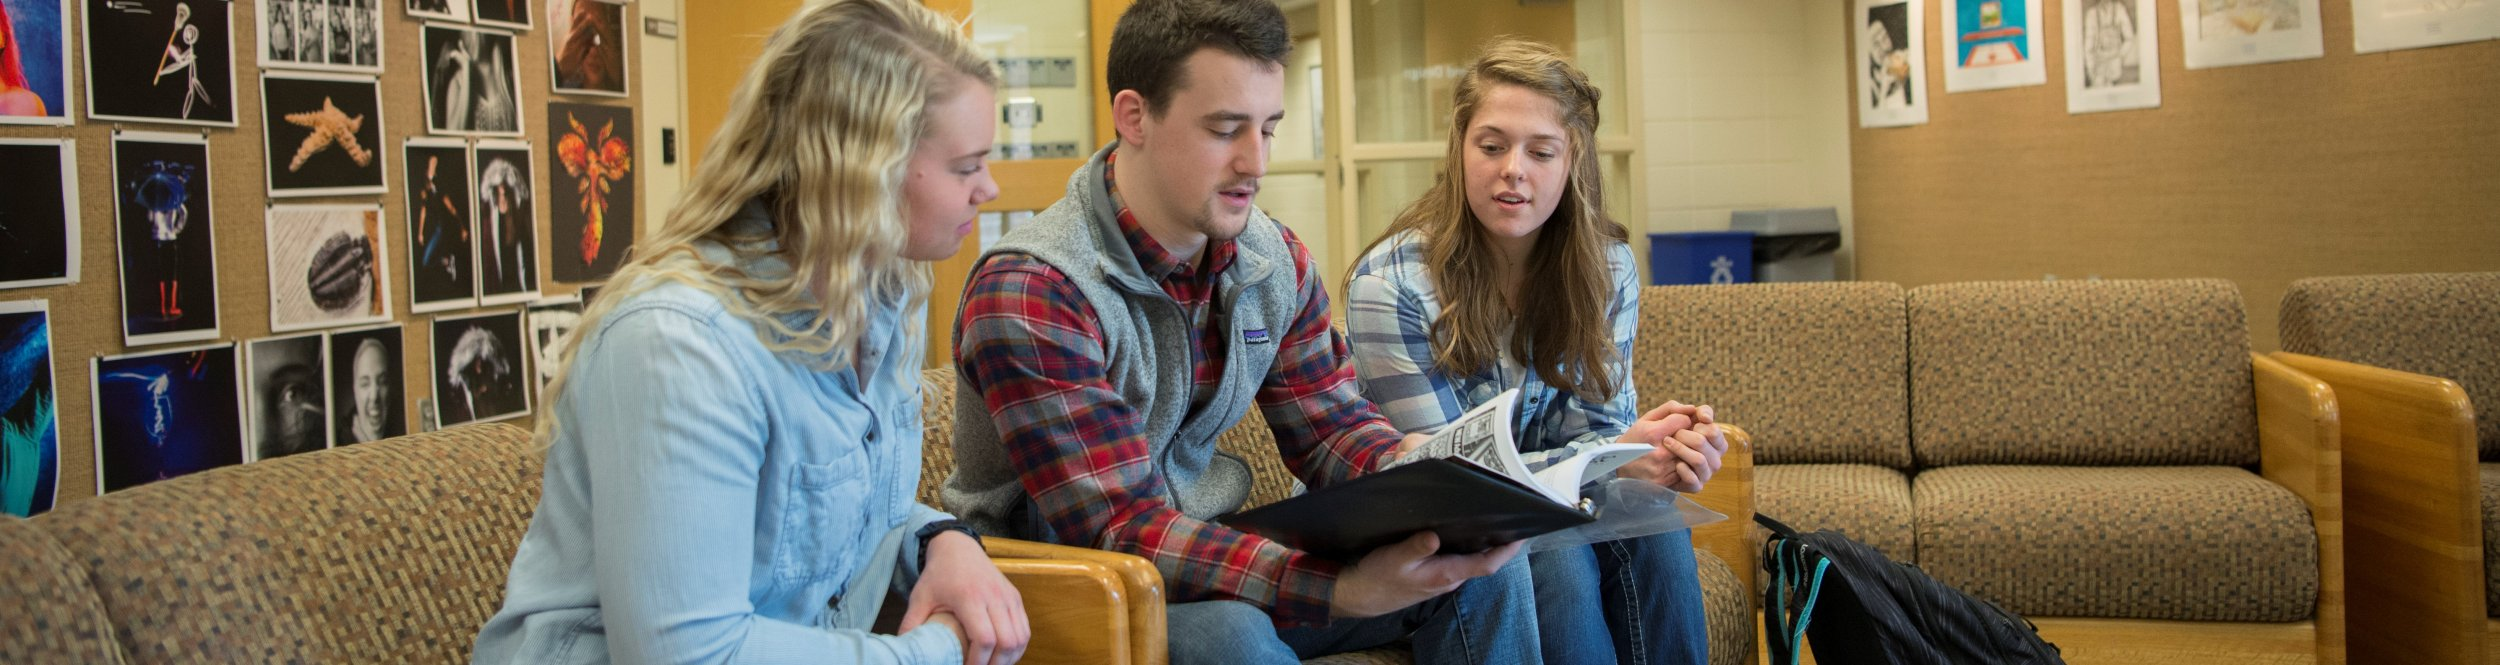 A student flips through a book, showing it to two other students.